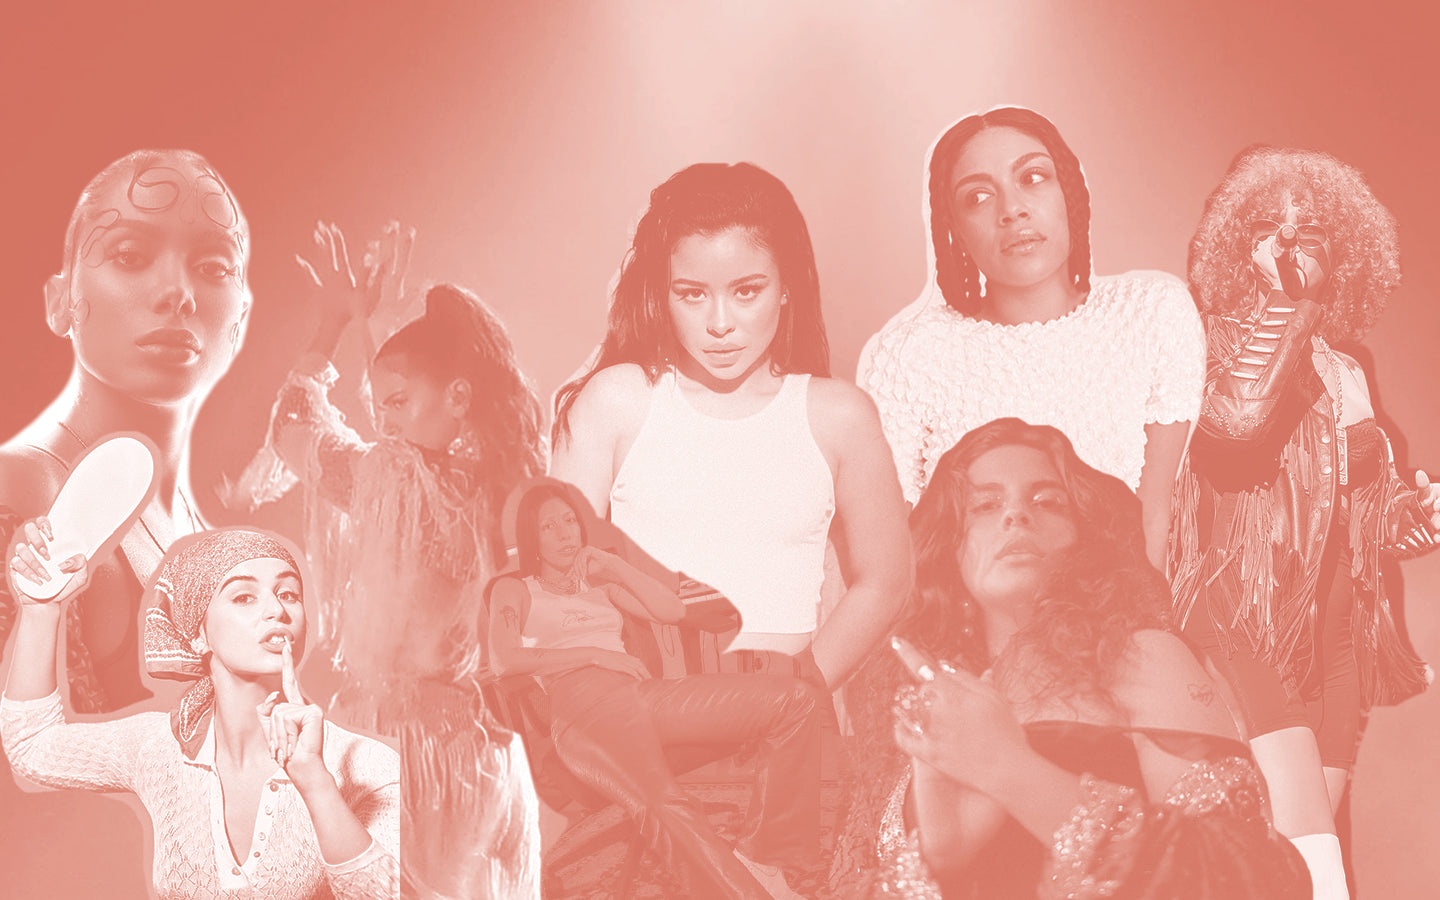 LISTEN UP: Get to Know the Latinas Reigning in Music RN